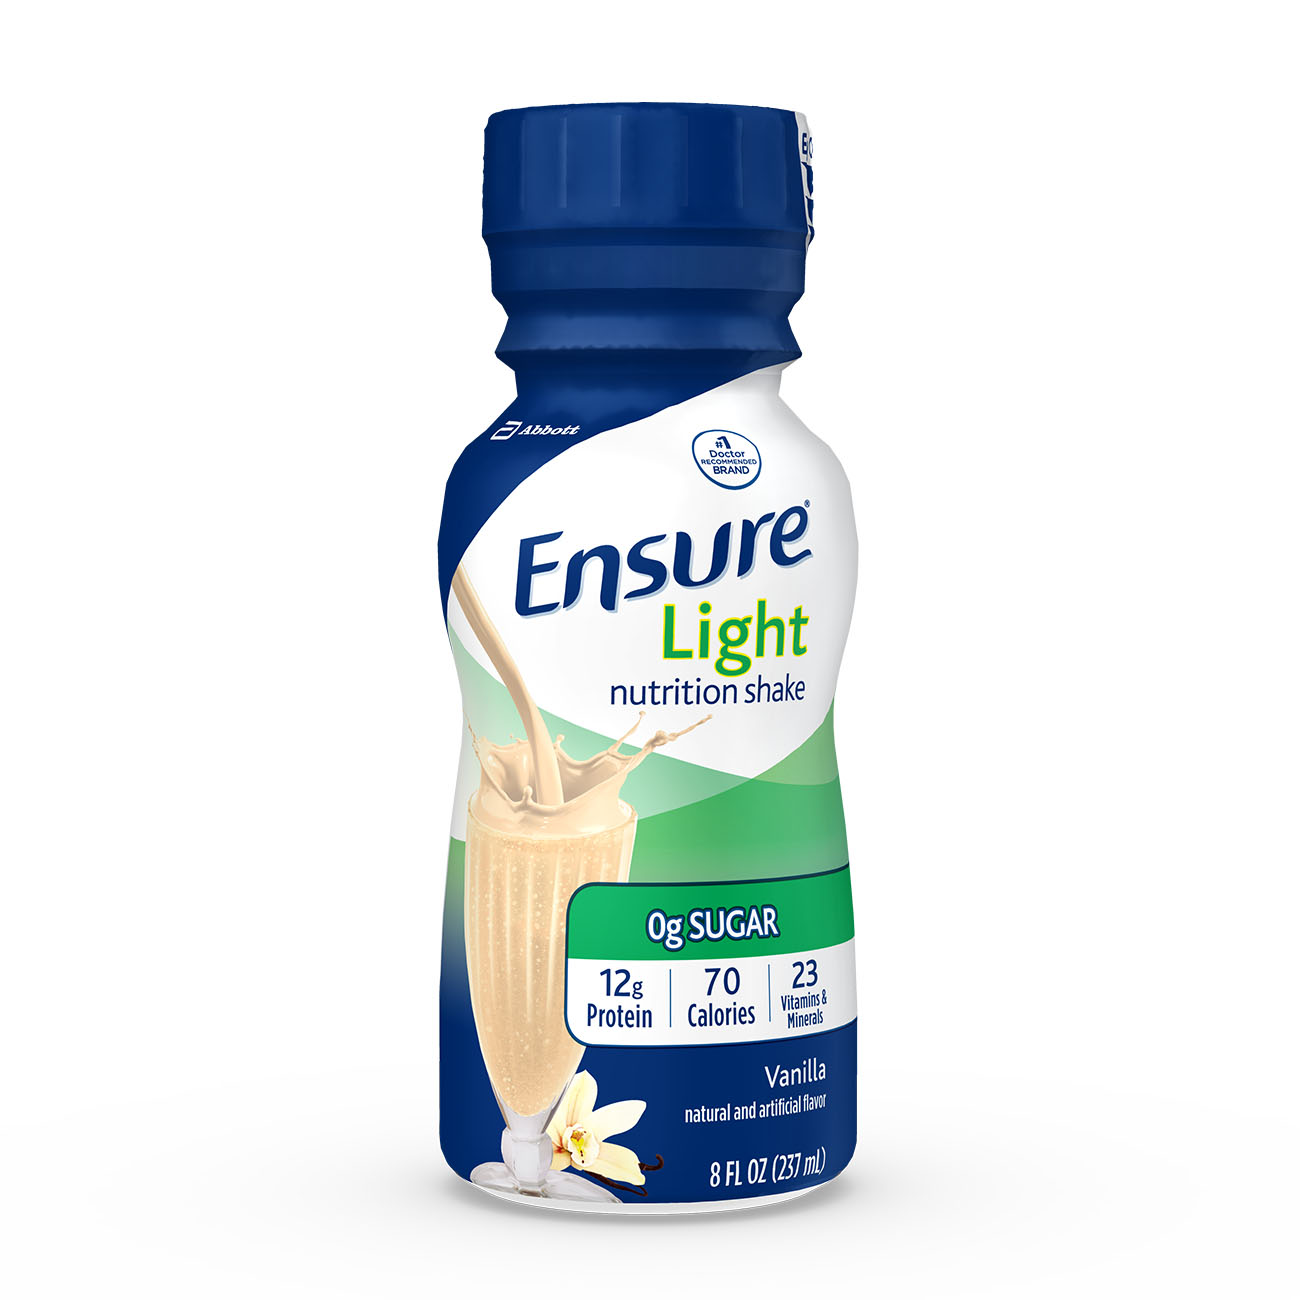 Ensure Light Nutrition Shake, 12g of high-quality protein, 0g Sugar, 2g Fat, Vanilla, 8 fl oz, 6 Count